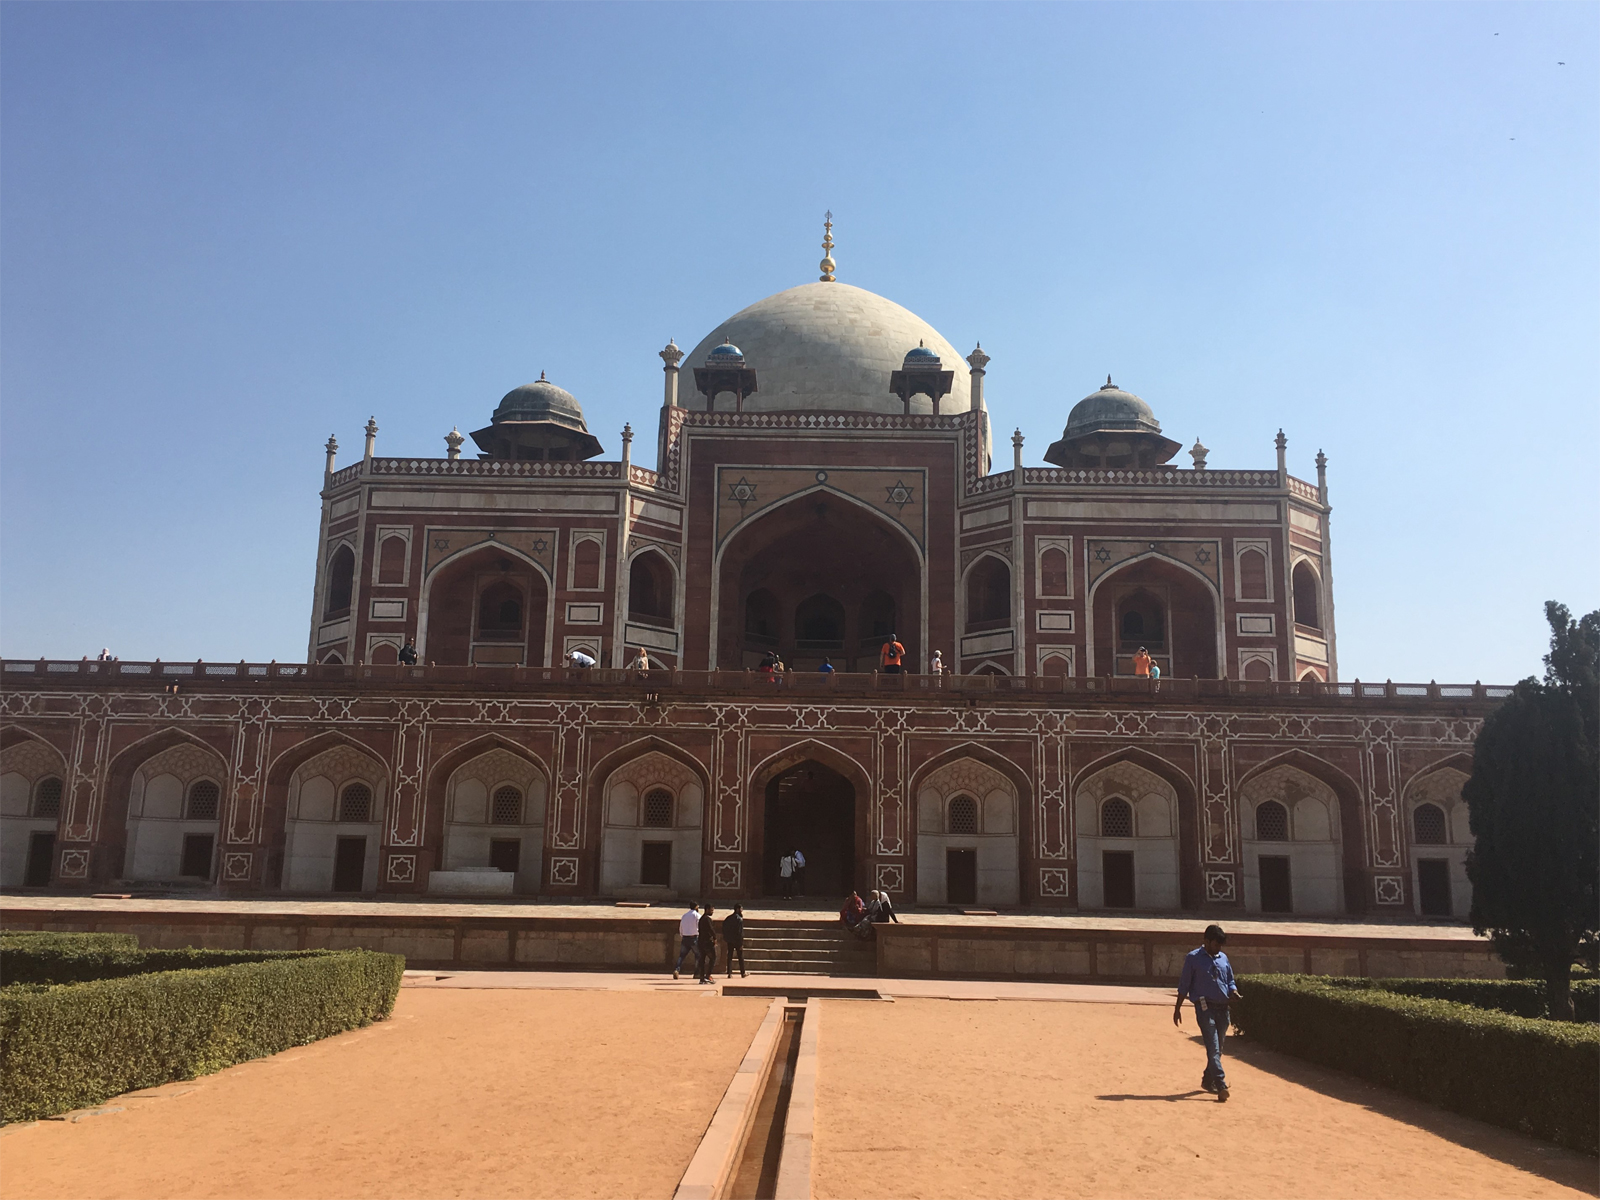 International Exchange Program: Sightseeing i Delhi och arbete i Gurgaon​